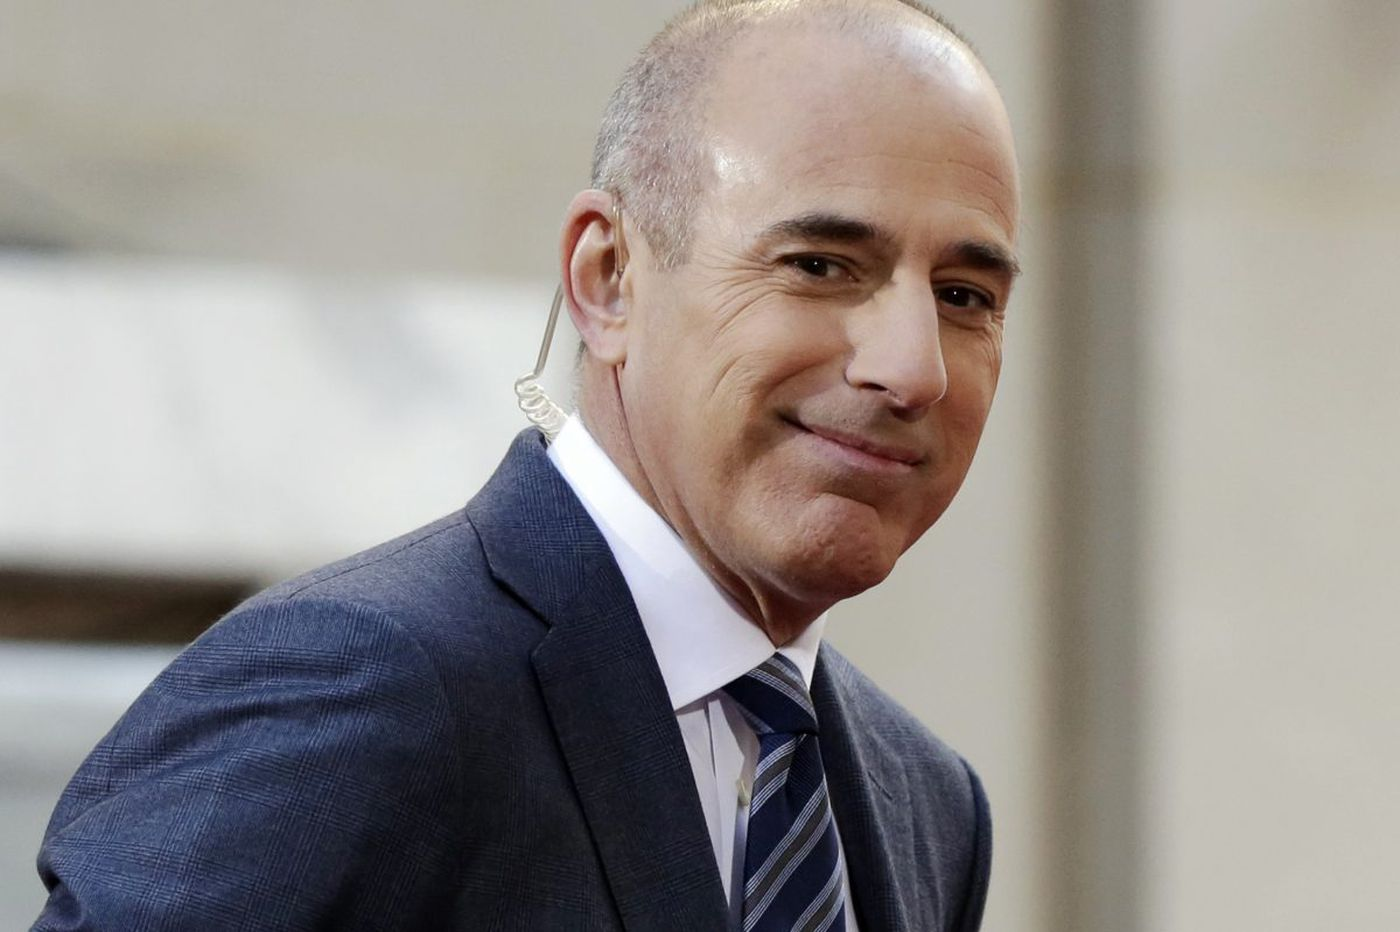 NBC 'Today' host Matt Lauer fired over allegation of 'inappropriate sexual behavior'